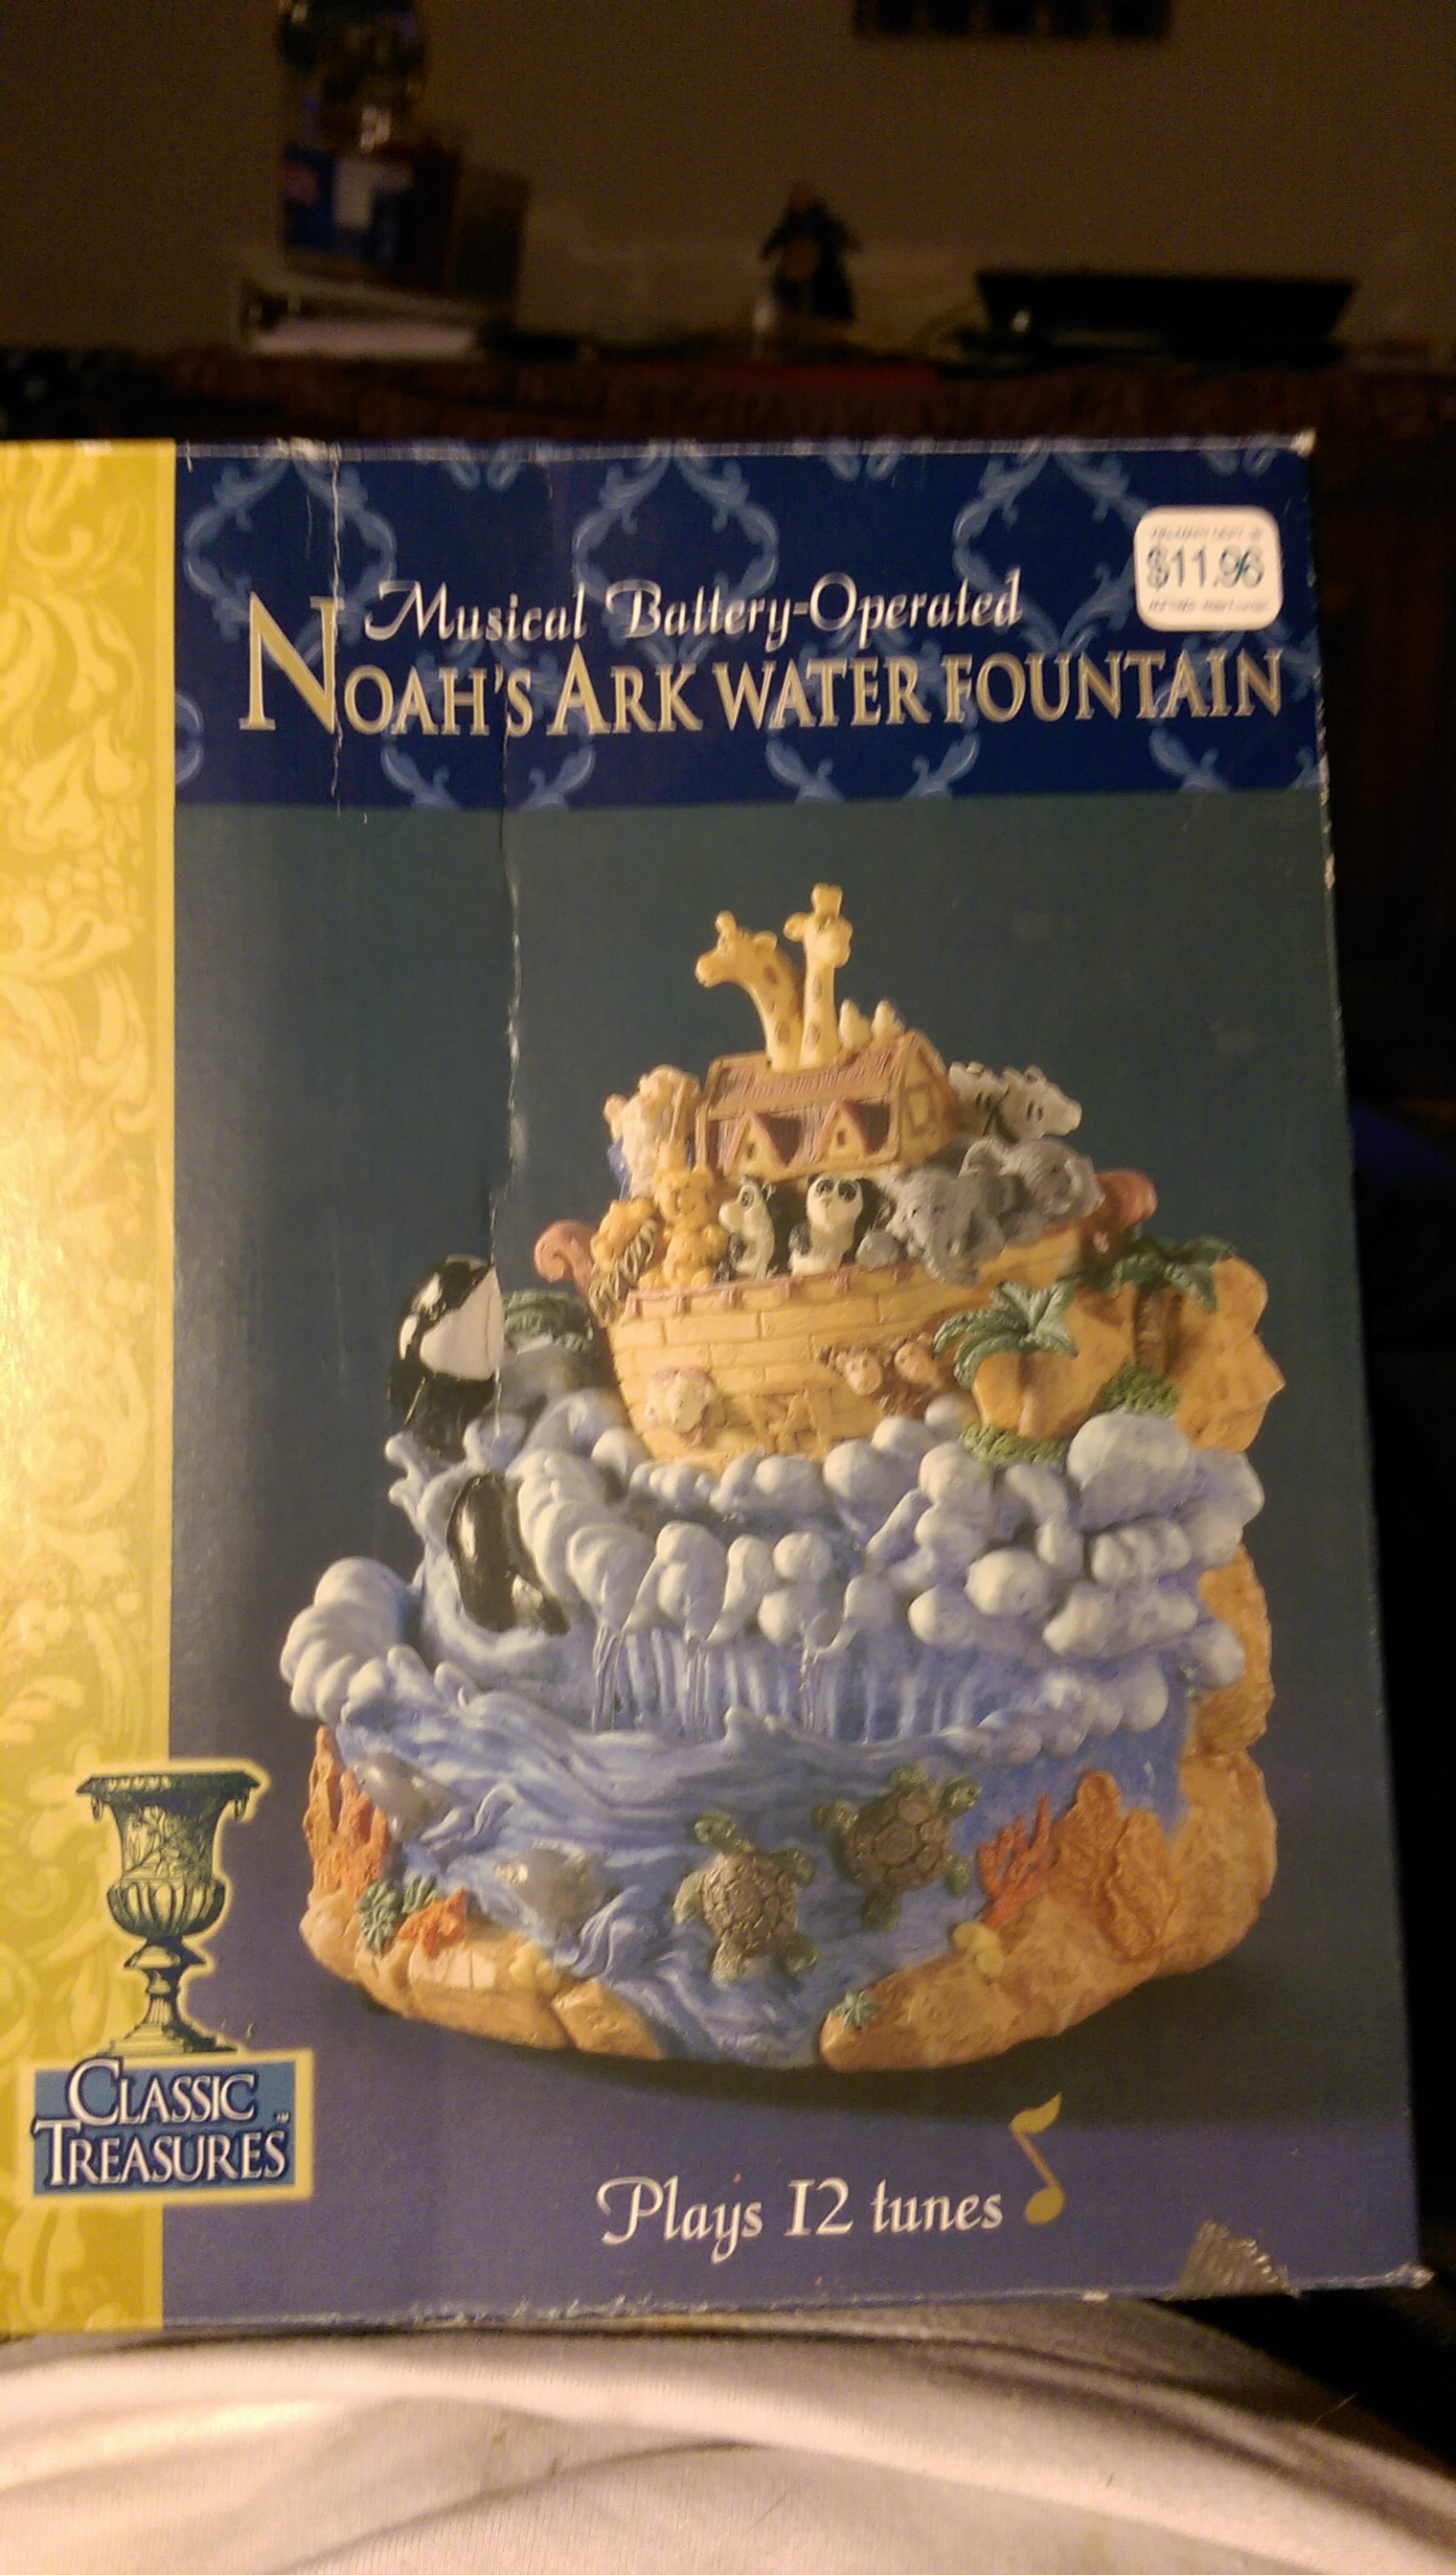 Noah's Ark Water Fountain Snowglobe front image (front cover)